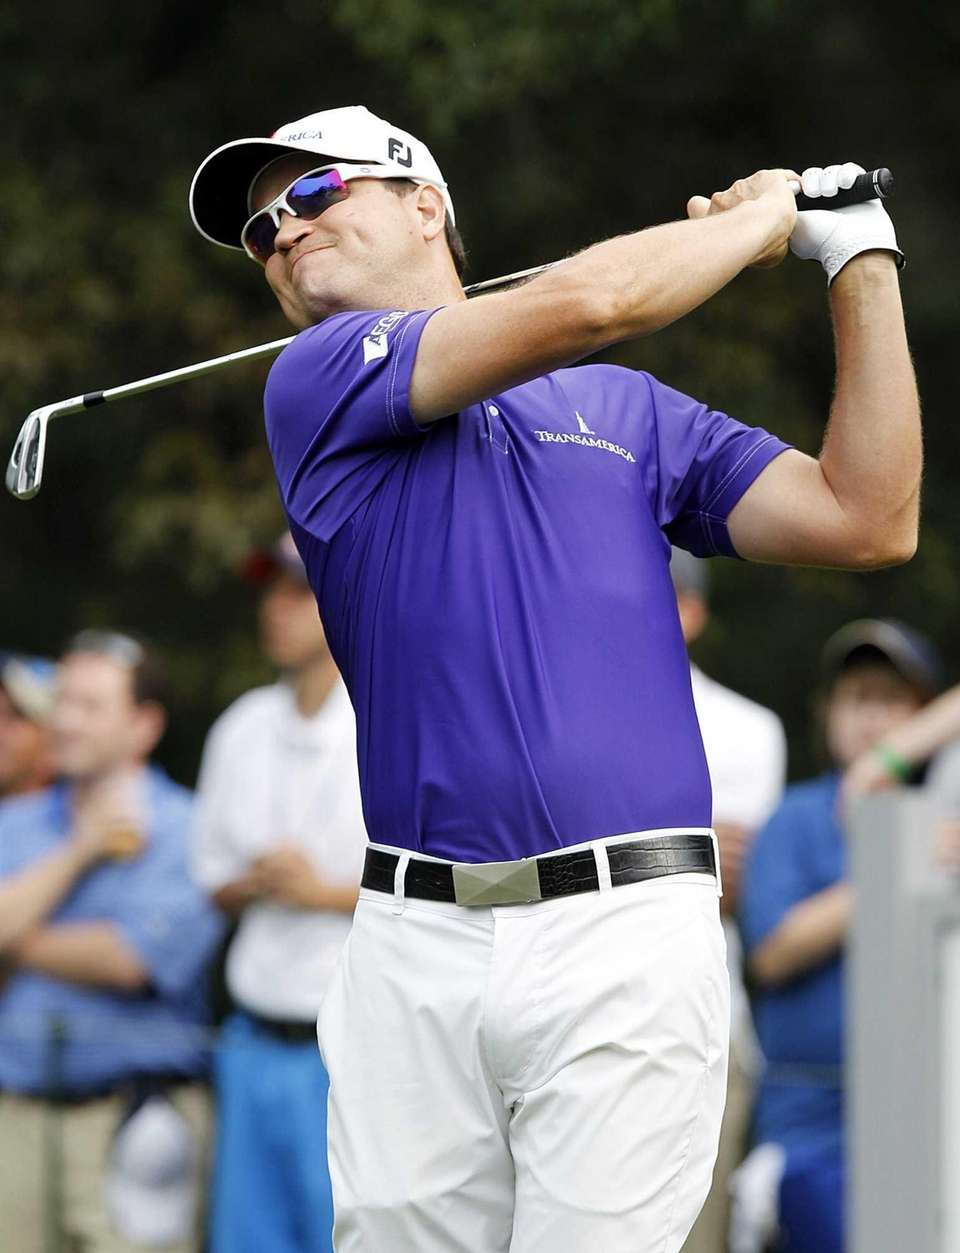 Zach Johnson hits a tee shot at the